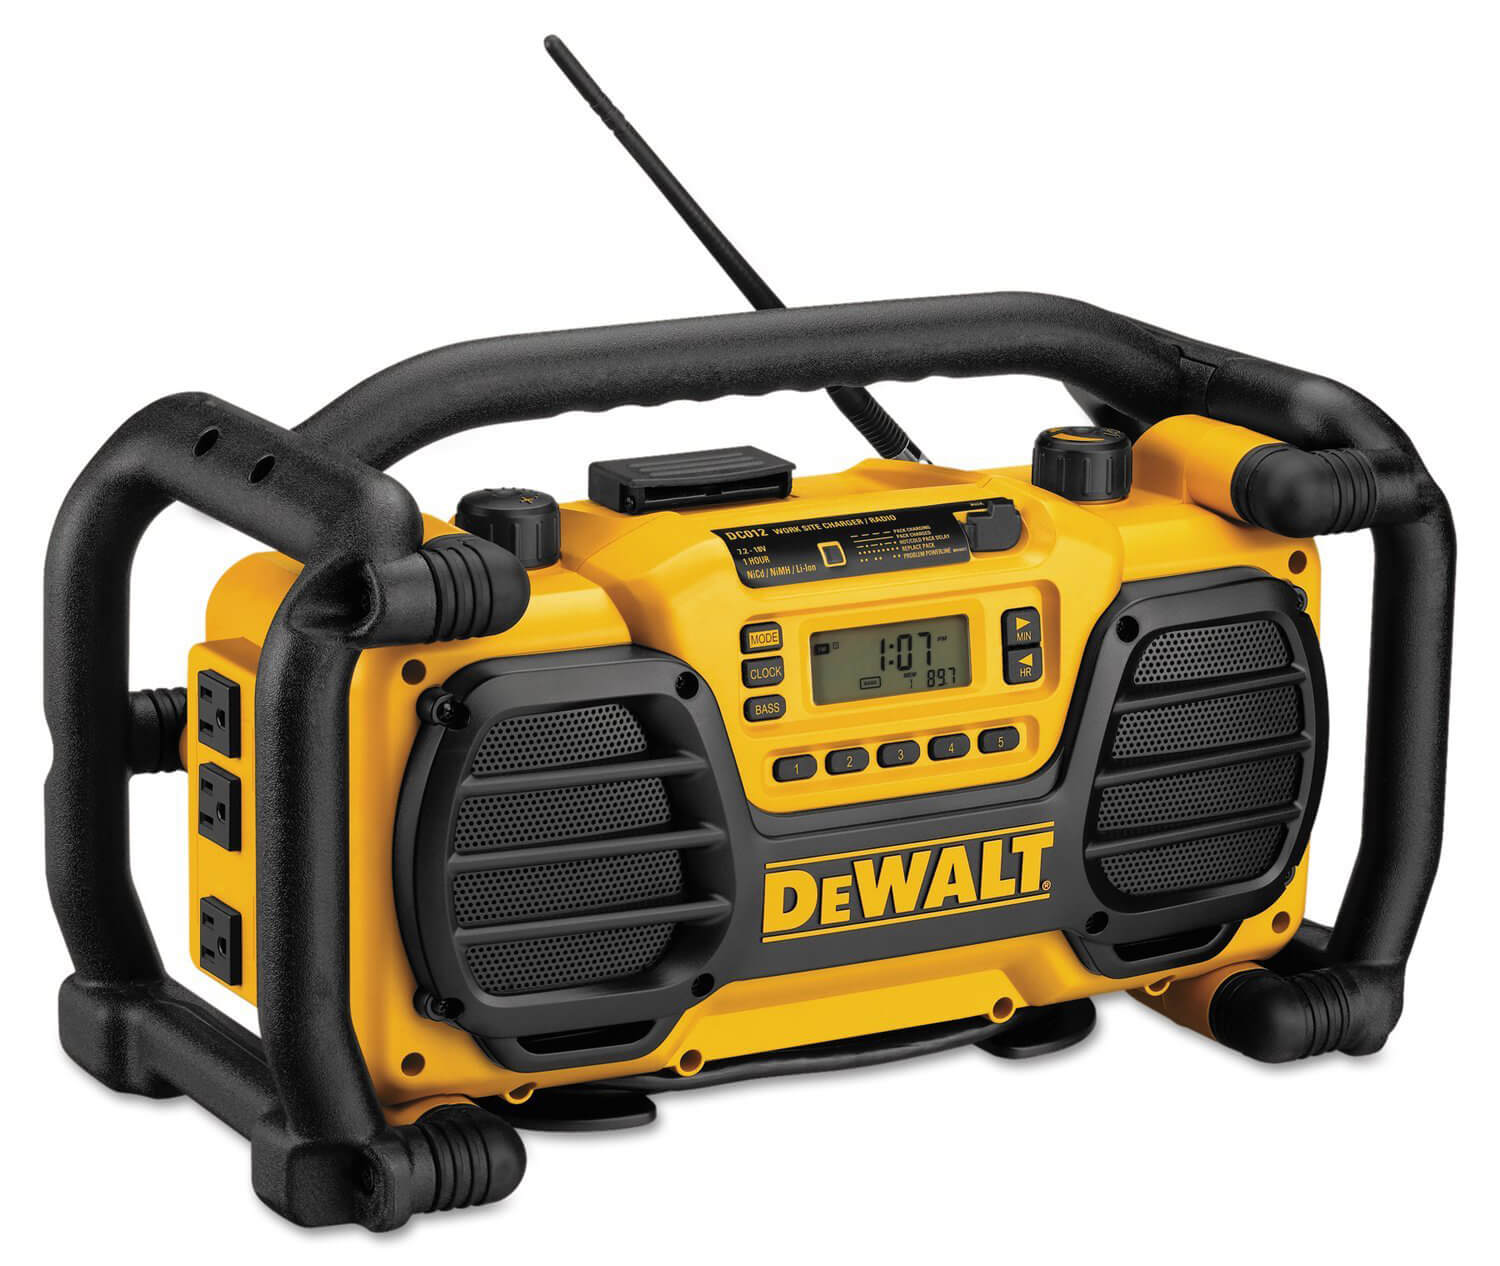 DEWALT DC012 7.2-Volt-18-Volt Heavy-Duty Worksite Radio